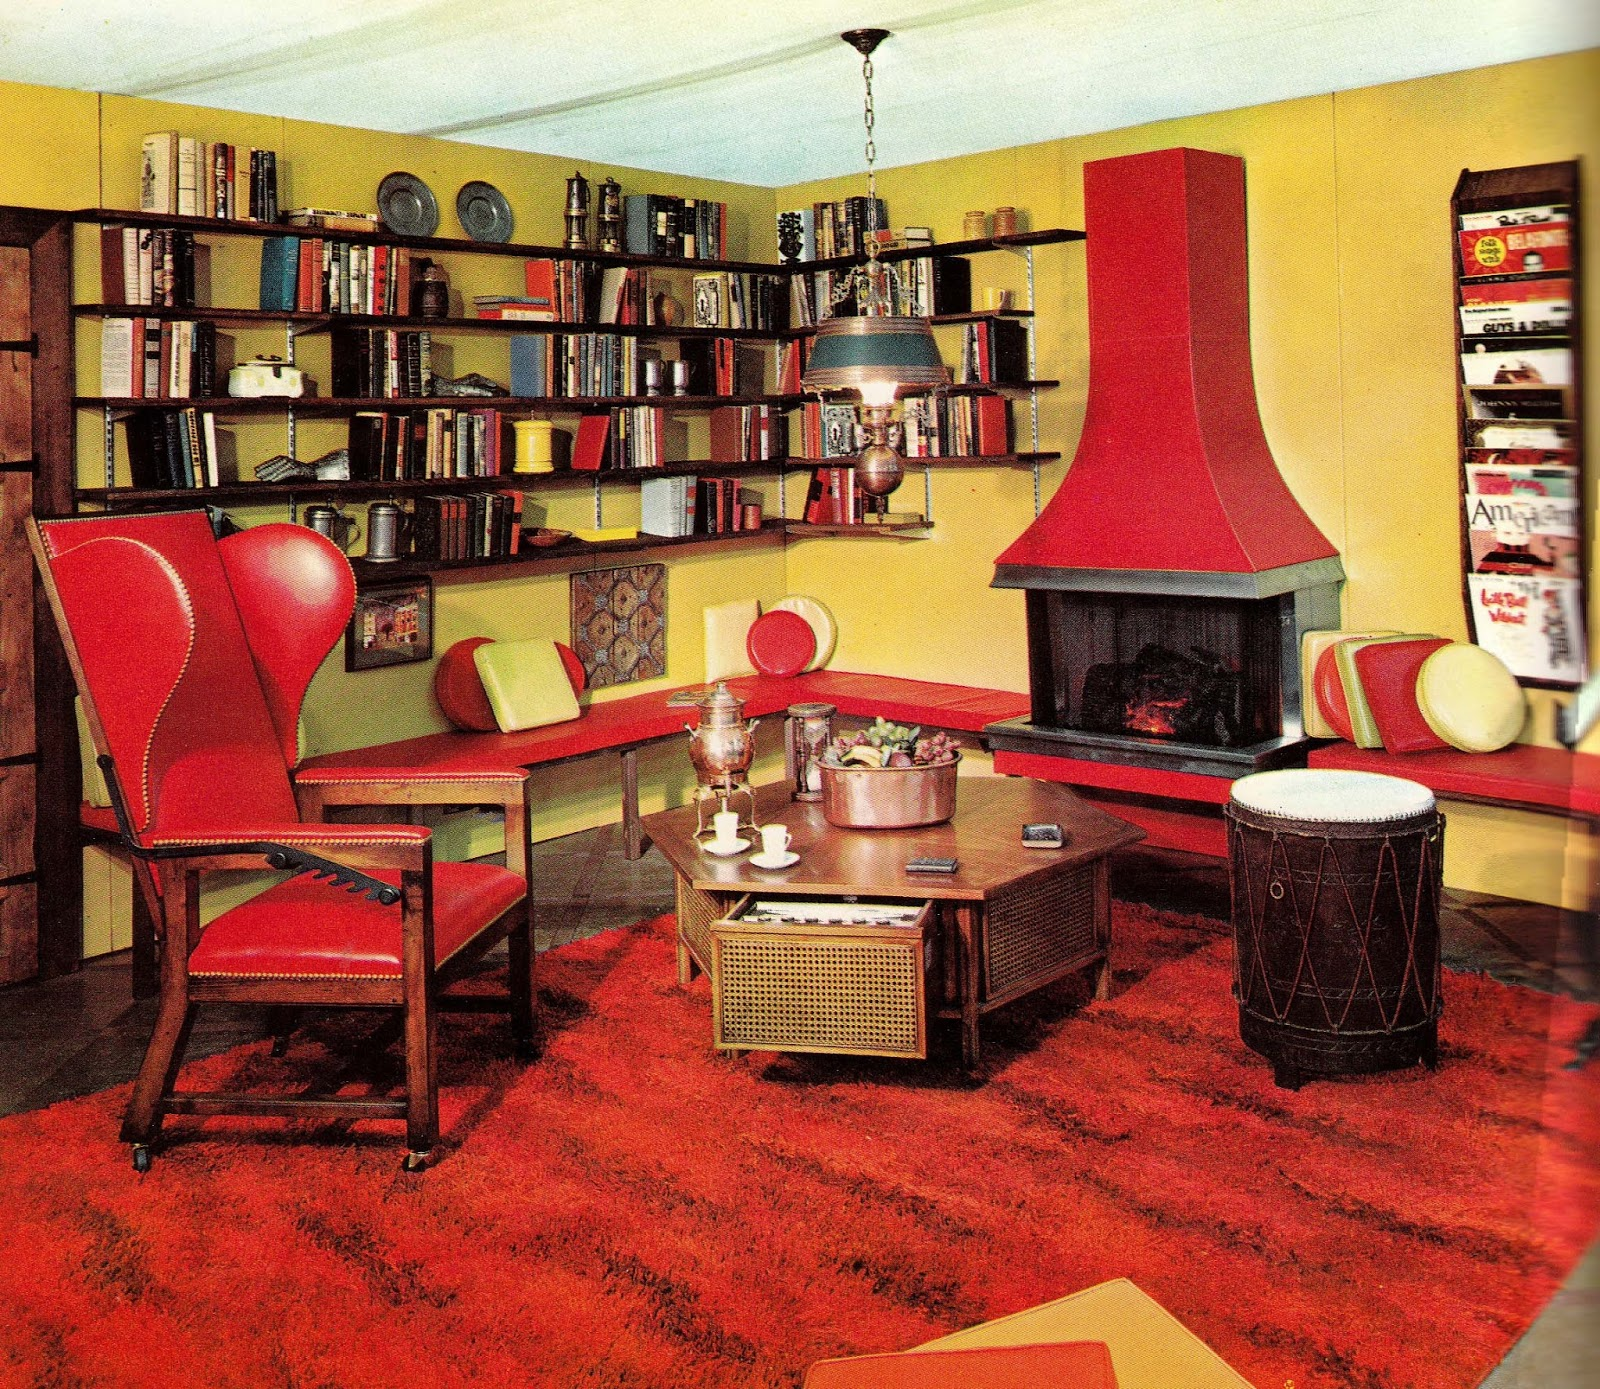 Decoration Design: 1960s Interior Décor: The Decade Of Psychedelia Gave Rise